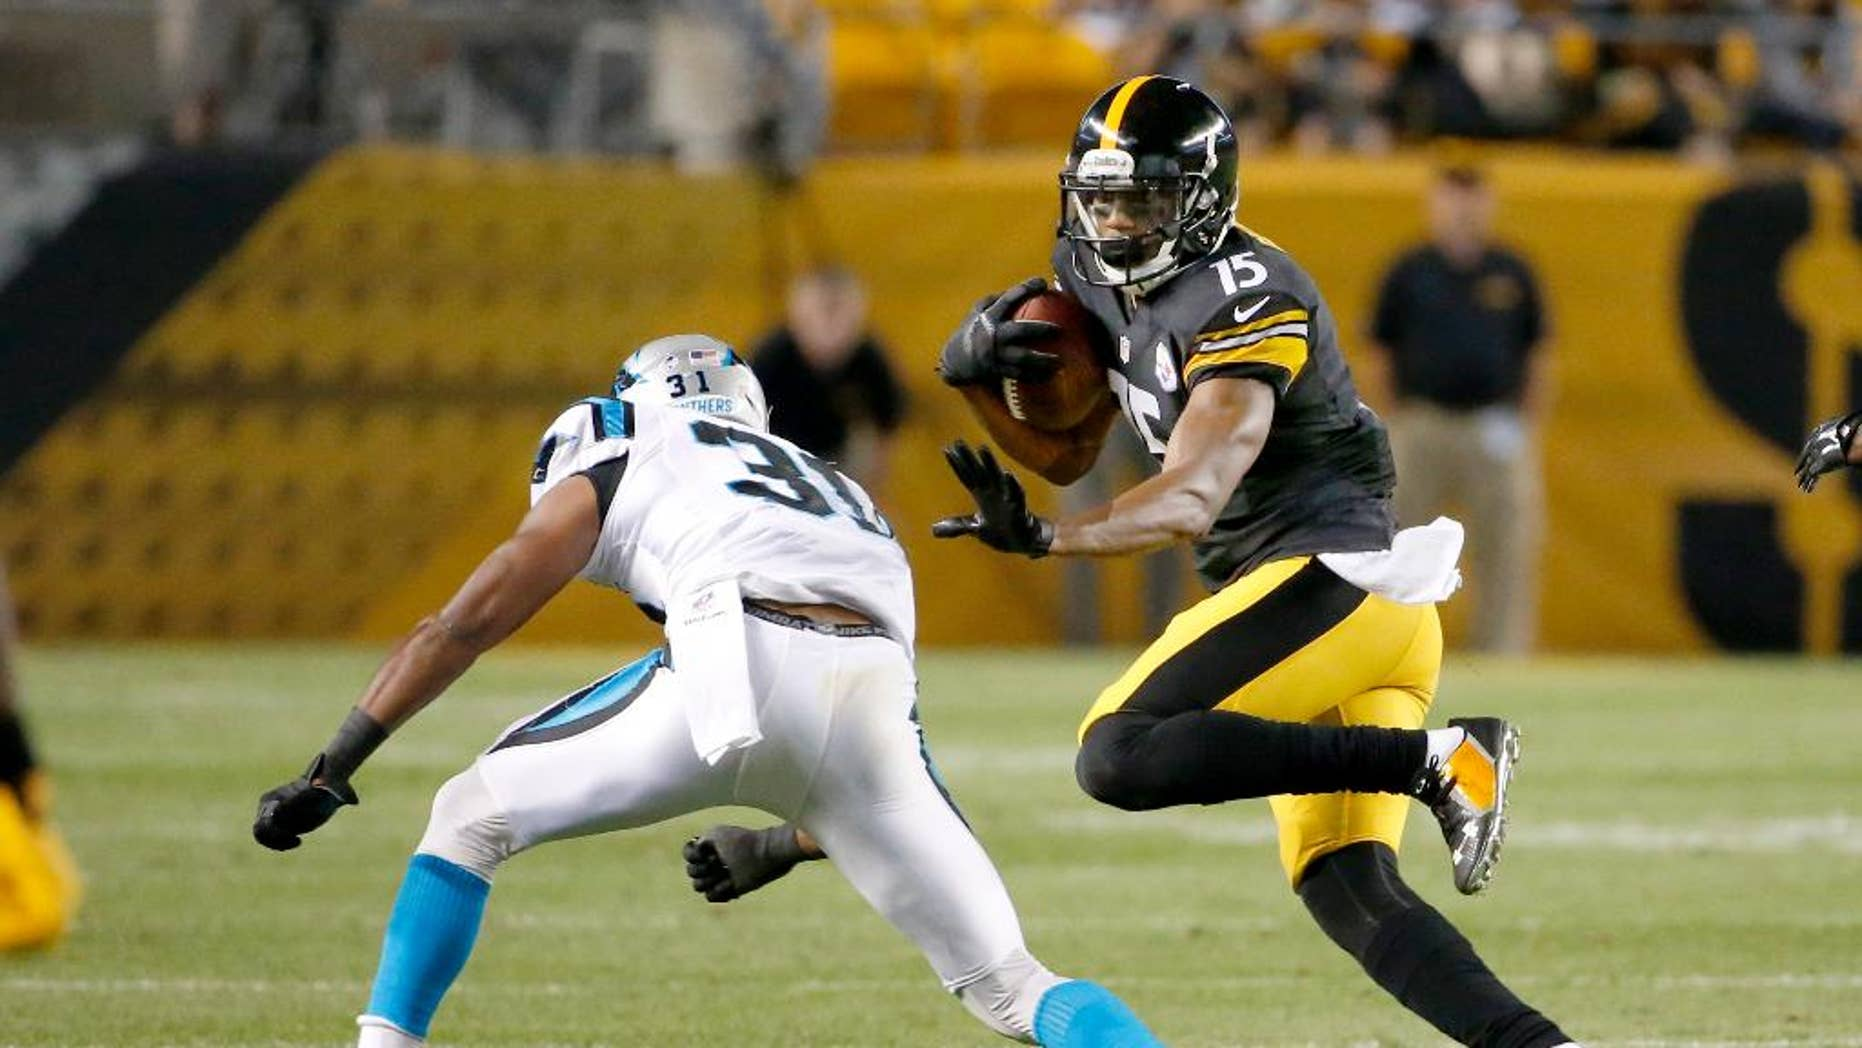 Pittsburgh Steelers wide receiver Justin Brown (15) tries to evade Carolina Panthers defensive back James Dockery (31) in the second quarter of a NFL preseason football game on Thursday, Aug. 28, 2014 in Pittsburgh. (AP Photo/Gene Puskar)